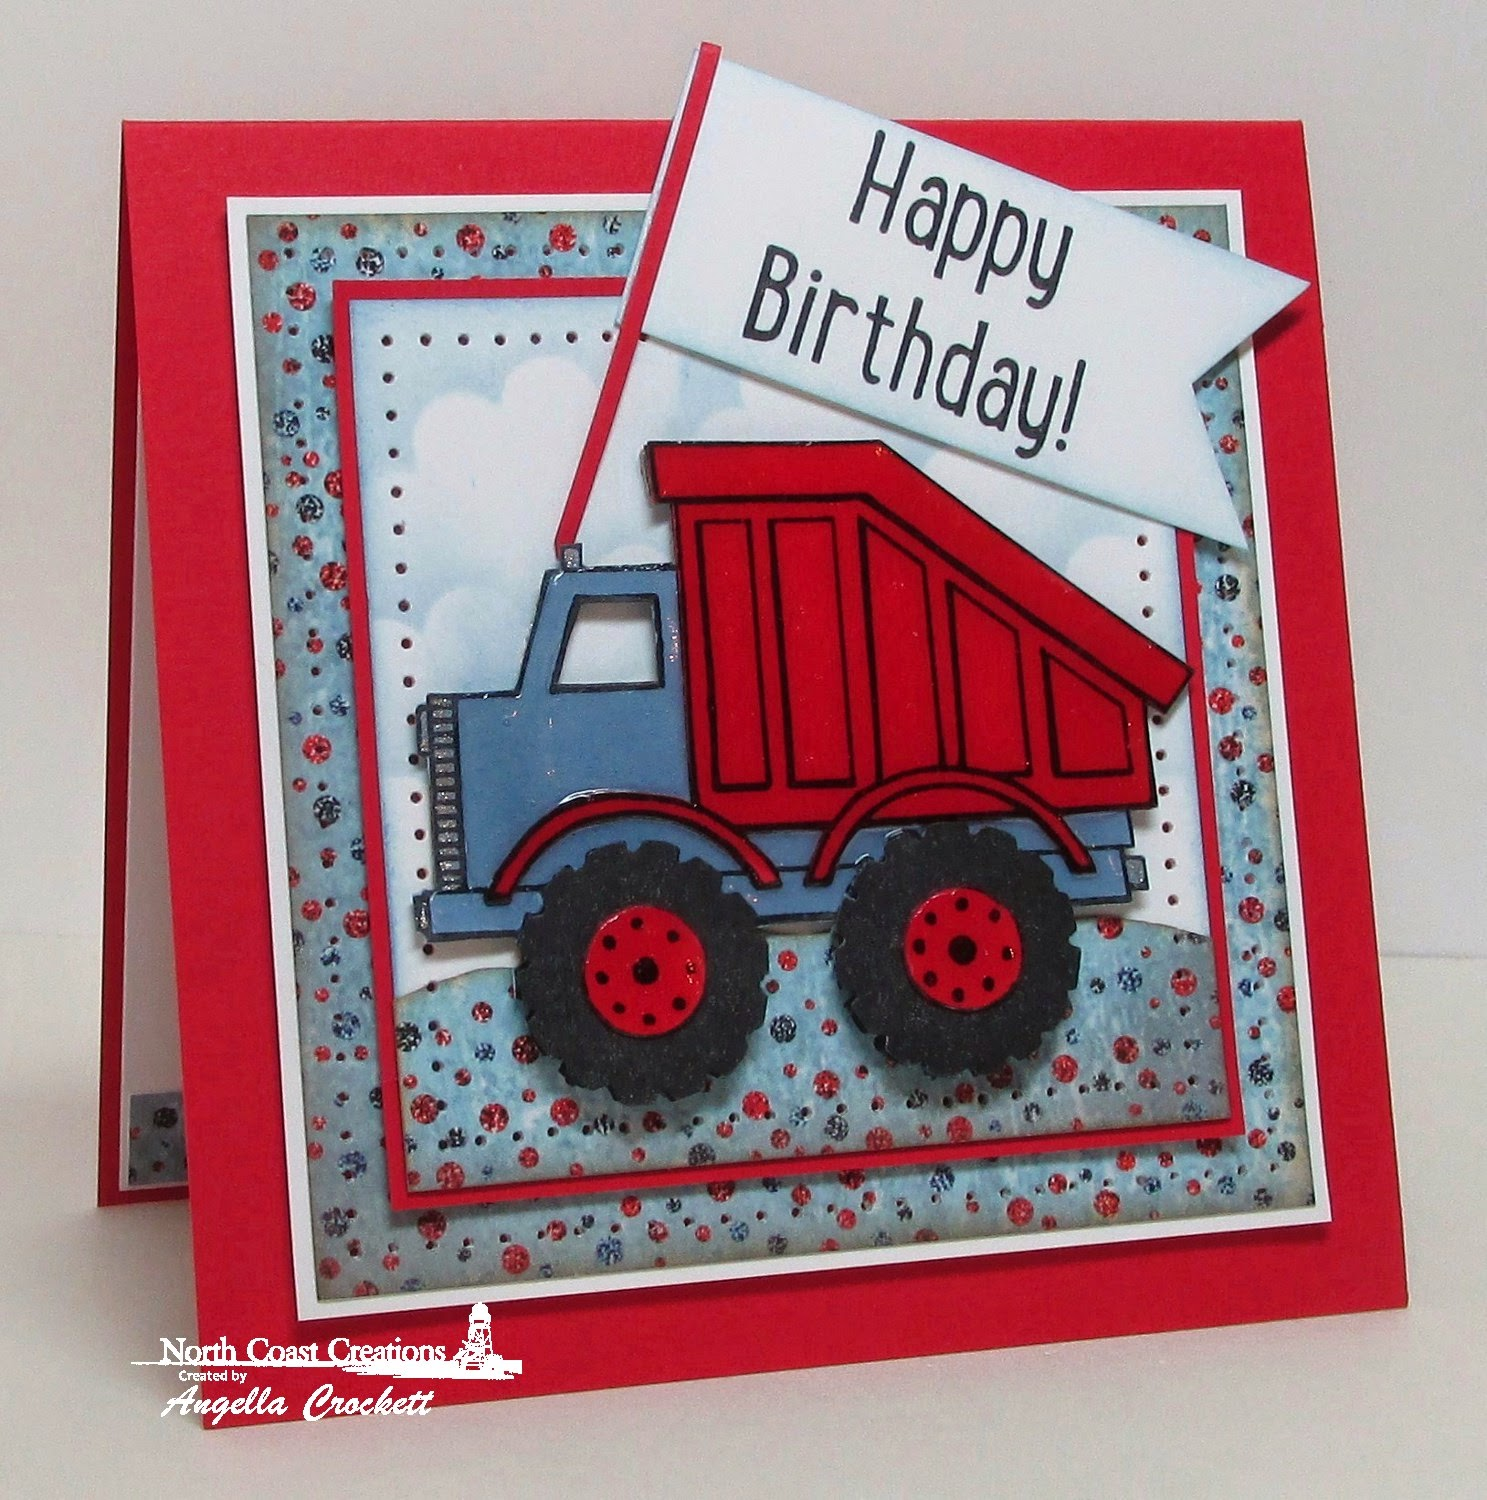 North Coast Creations Dump Truck Birthday, Our Daily Bread designs Patriotic Paper Collection, Card Designer Angie Crockett